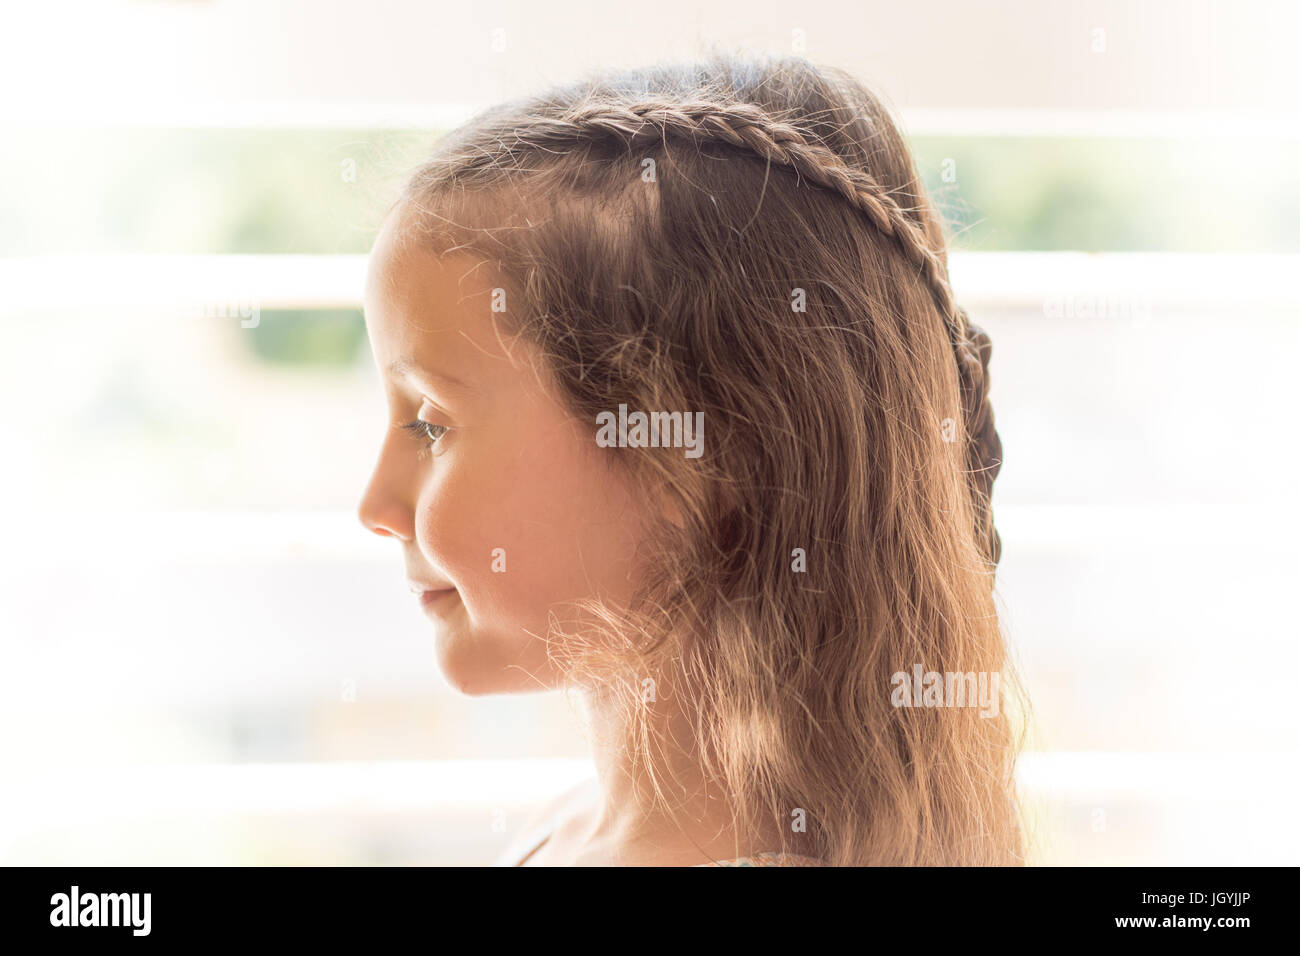 High-key portrait of girl with braided hair. Child with long brown with hairstyle with plaits, in front of window - Stock Image